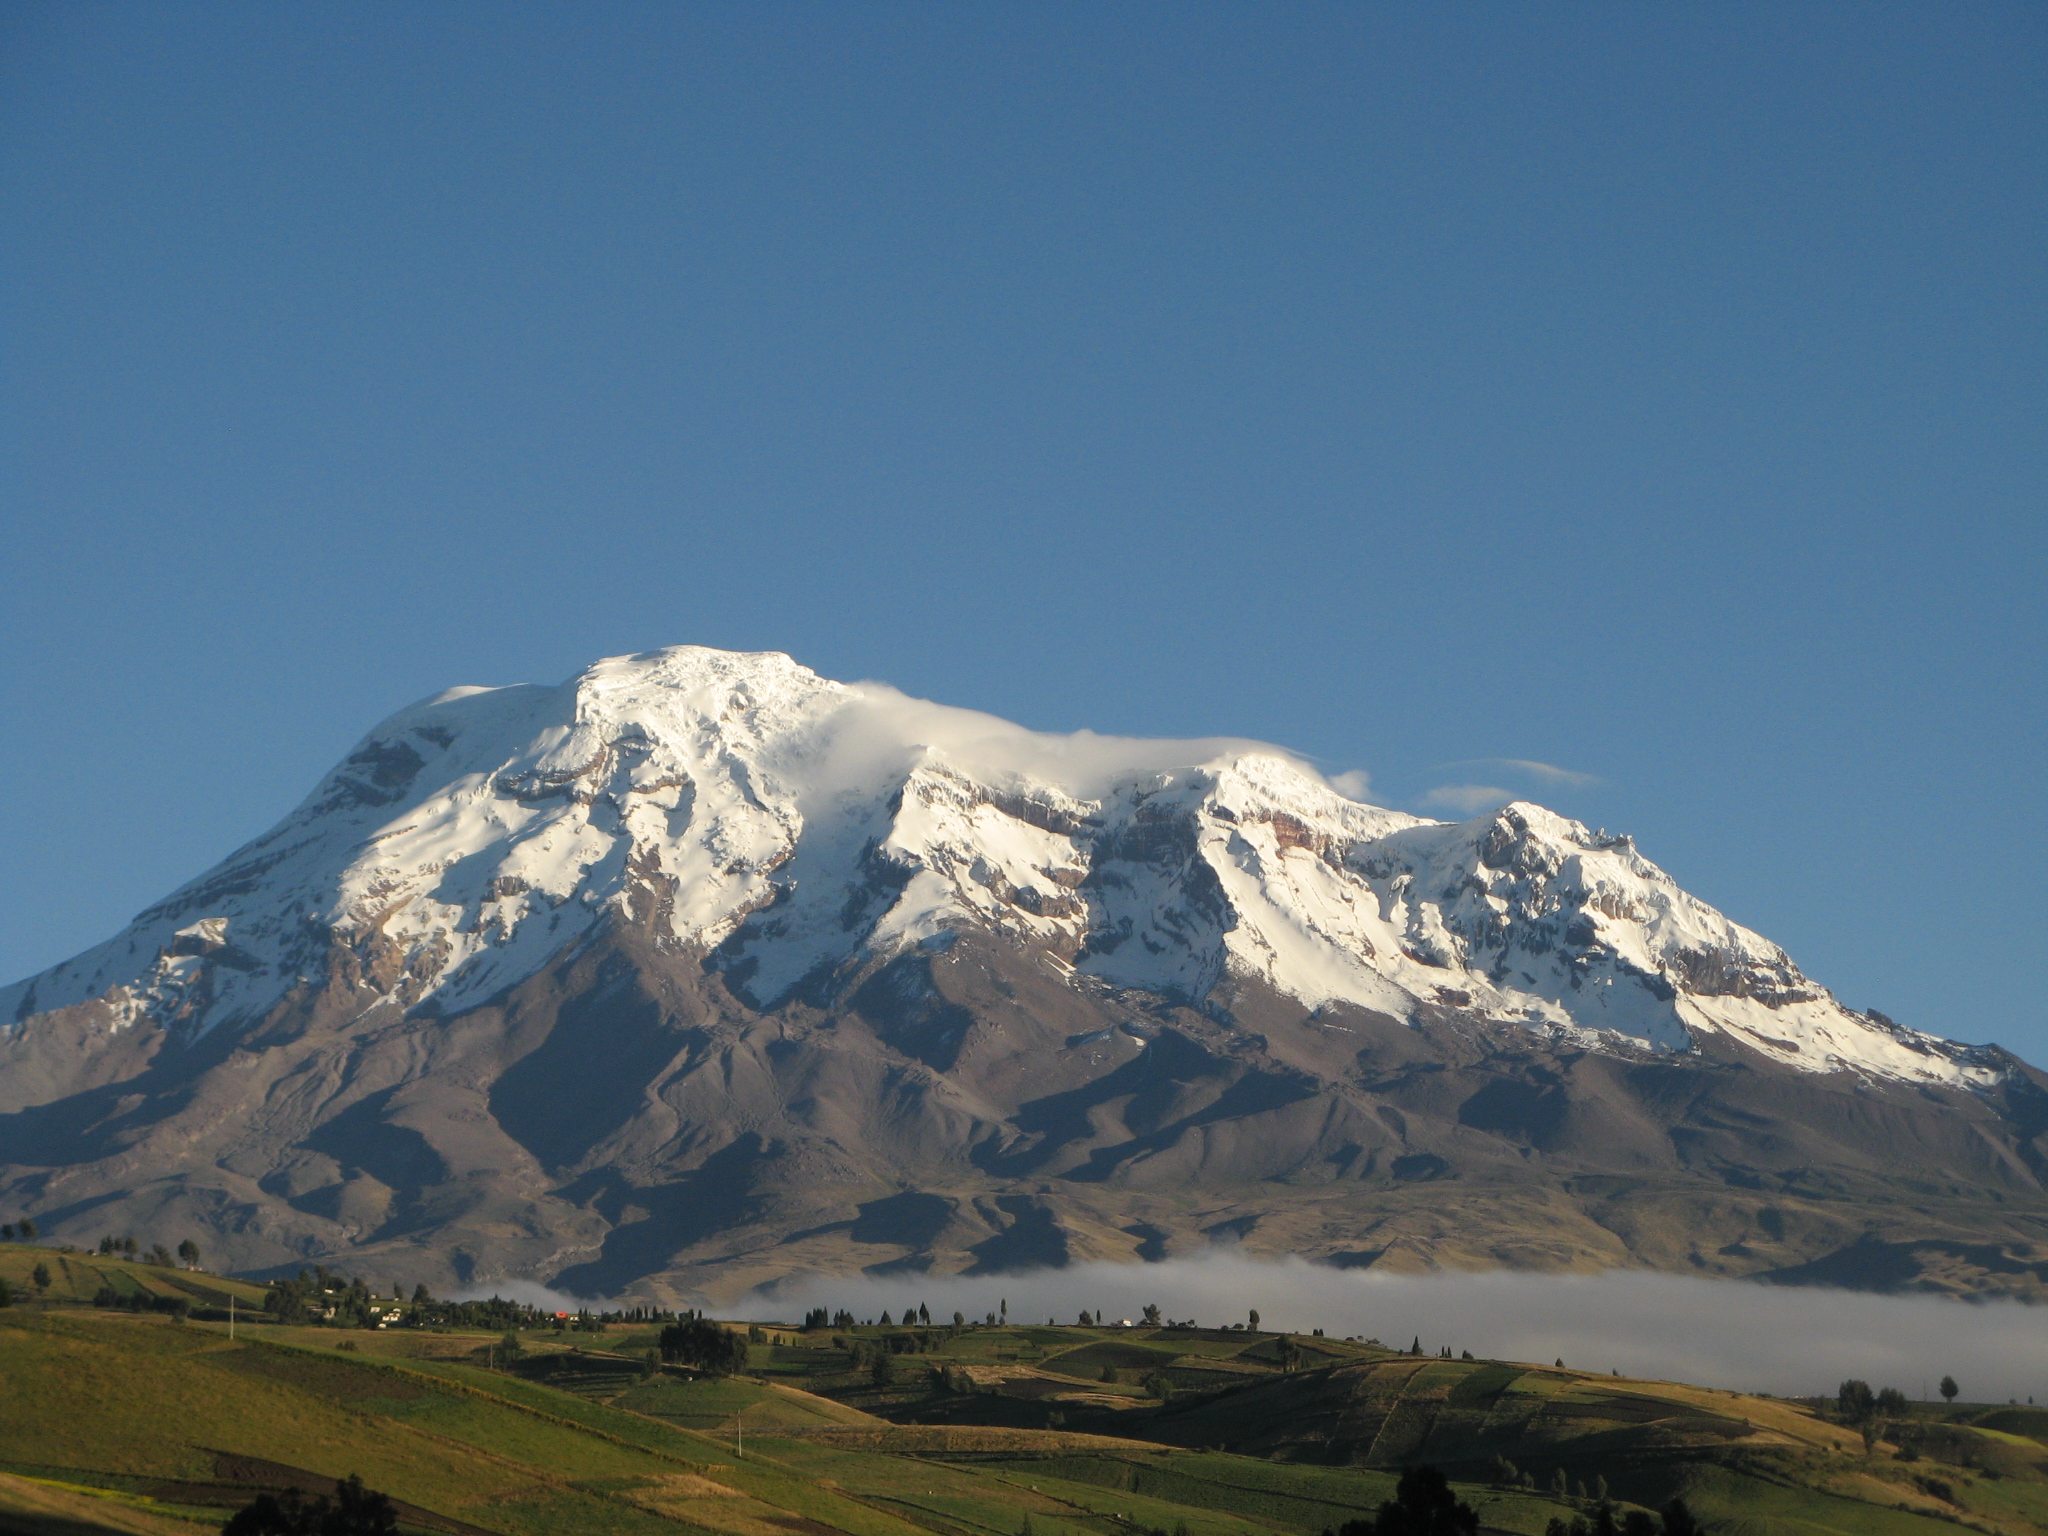 https://upload.wikimedia.org/wikipedia/commons/2/21/Ecuador_Chimborazo_5923.jpg